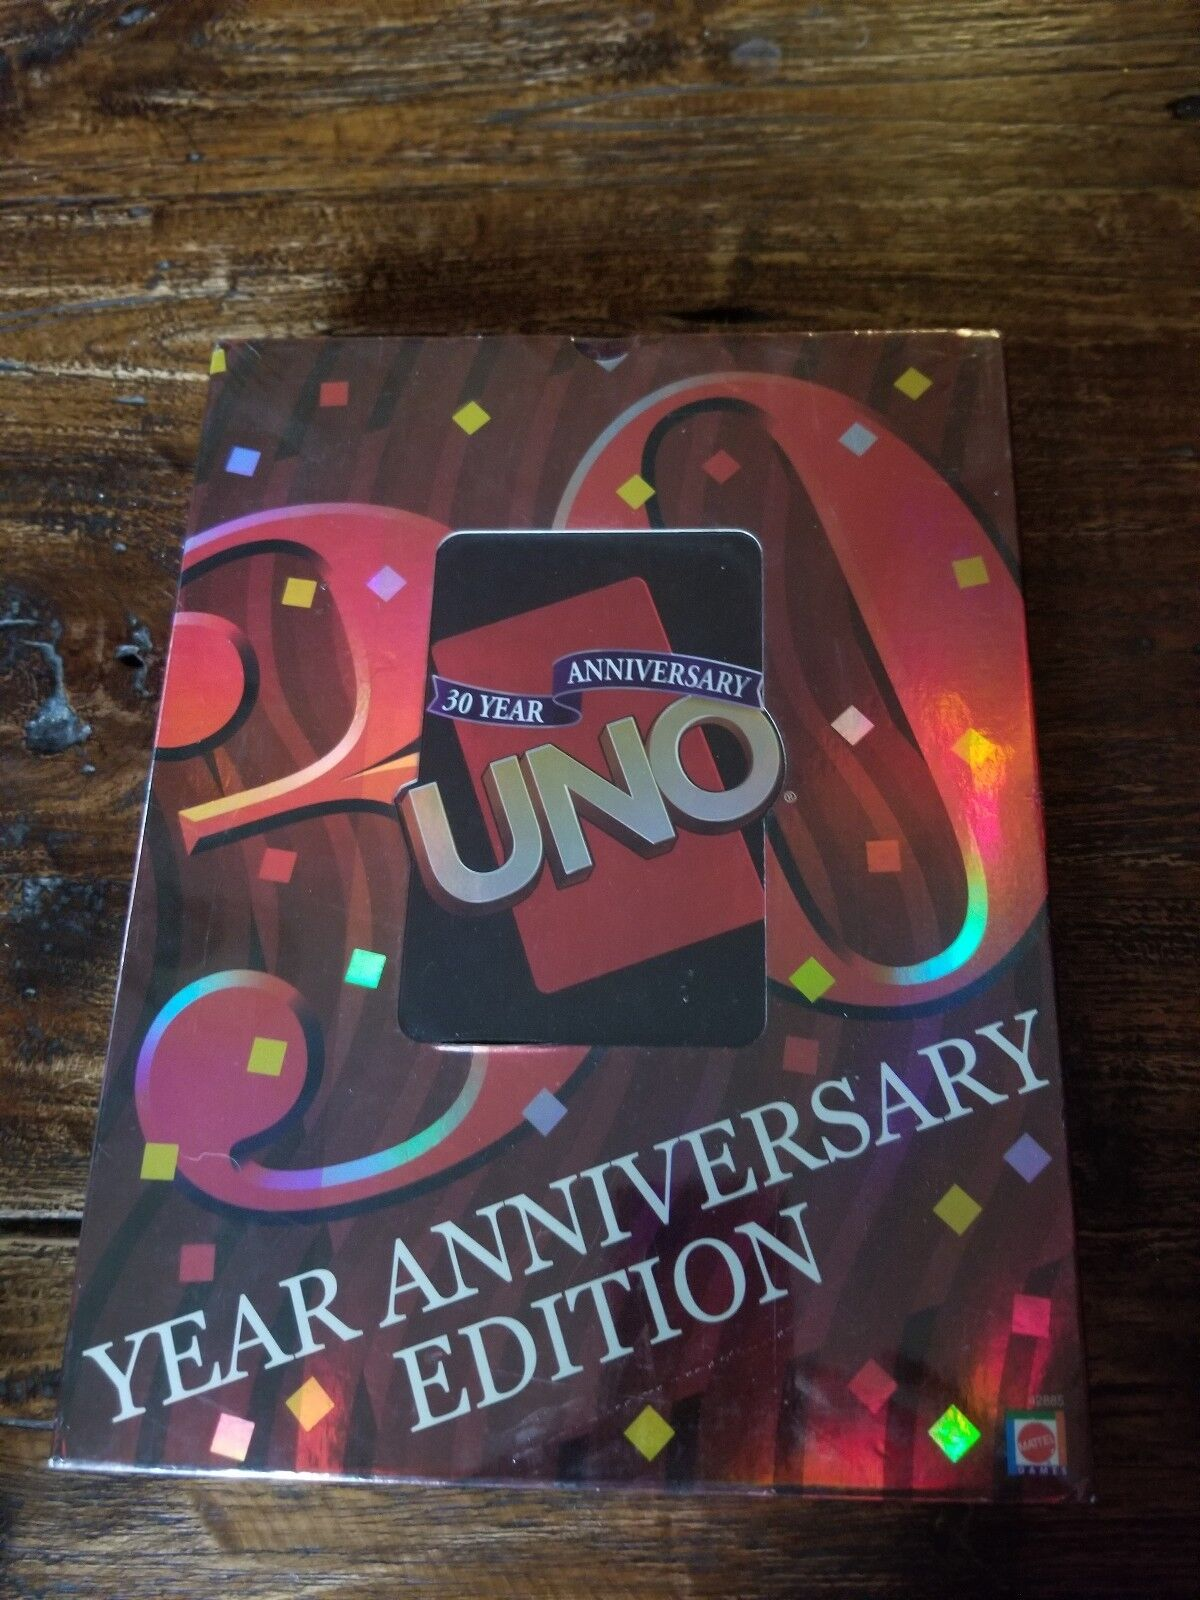 New UNO 30 YEAR ANNIVERSARY EDITION by Mattel